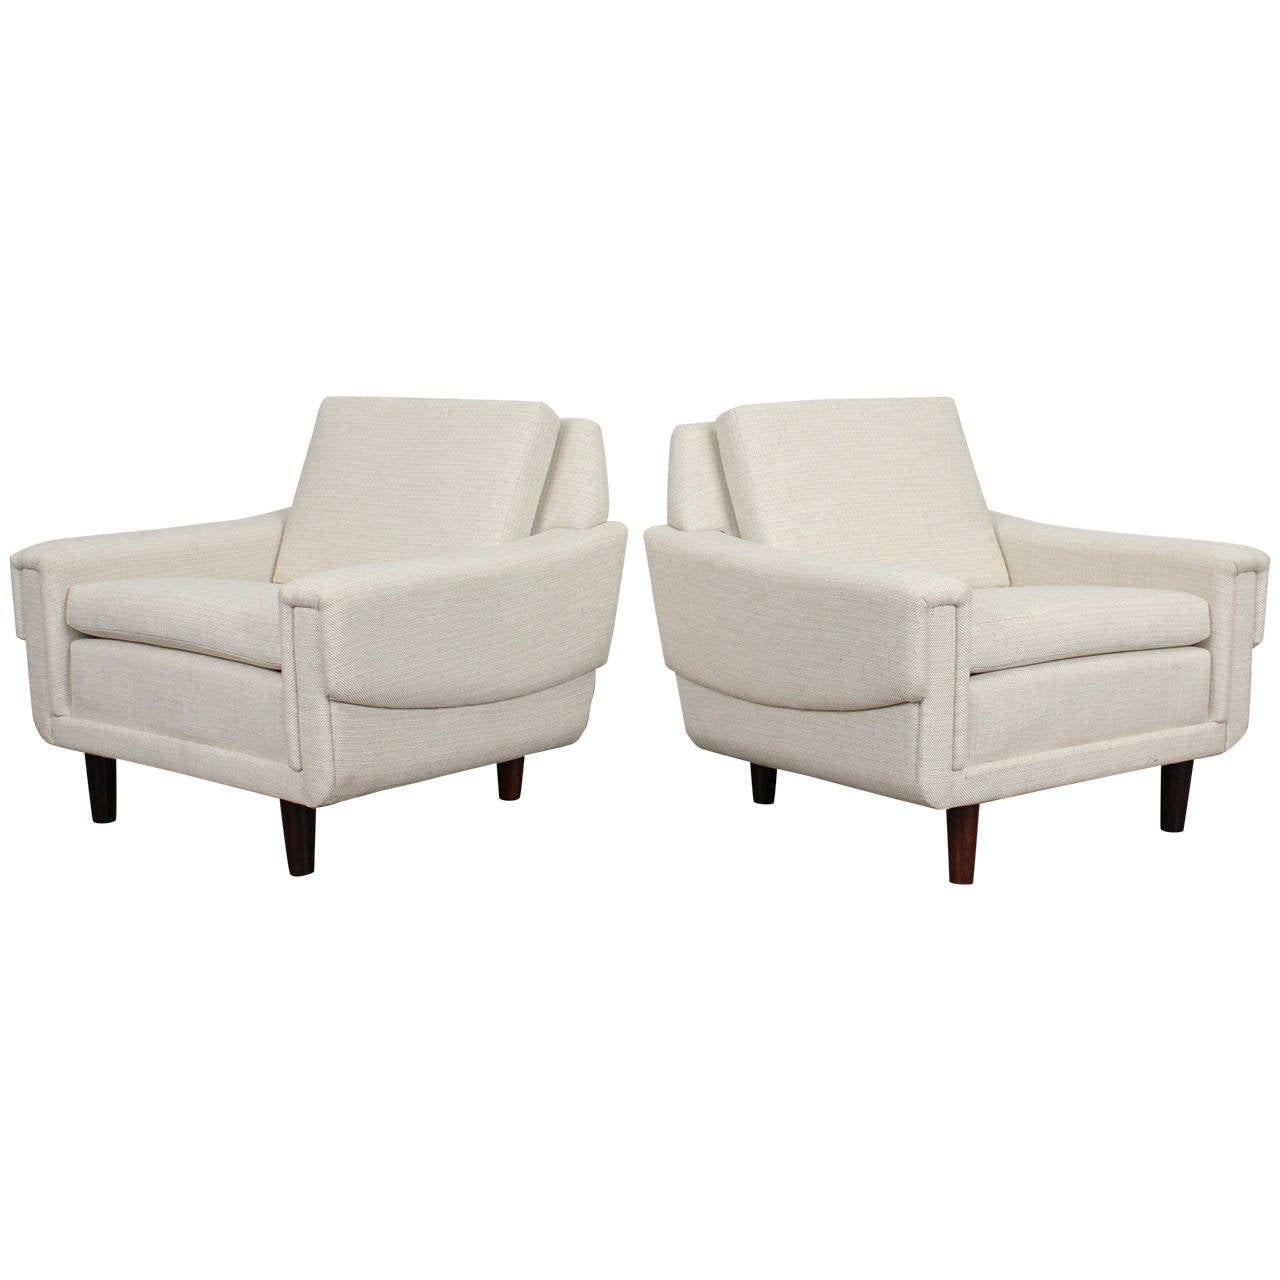 Pair of f White Danish Modern Low Lounge Chairs at 1stdibs